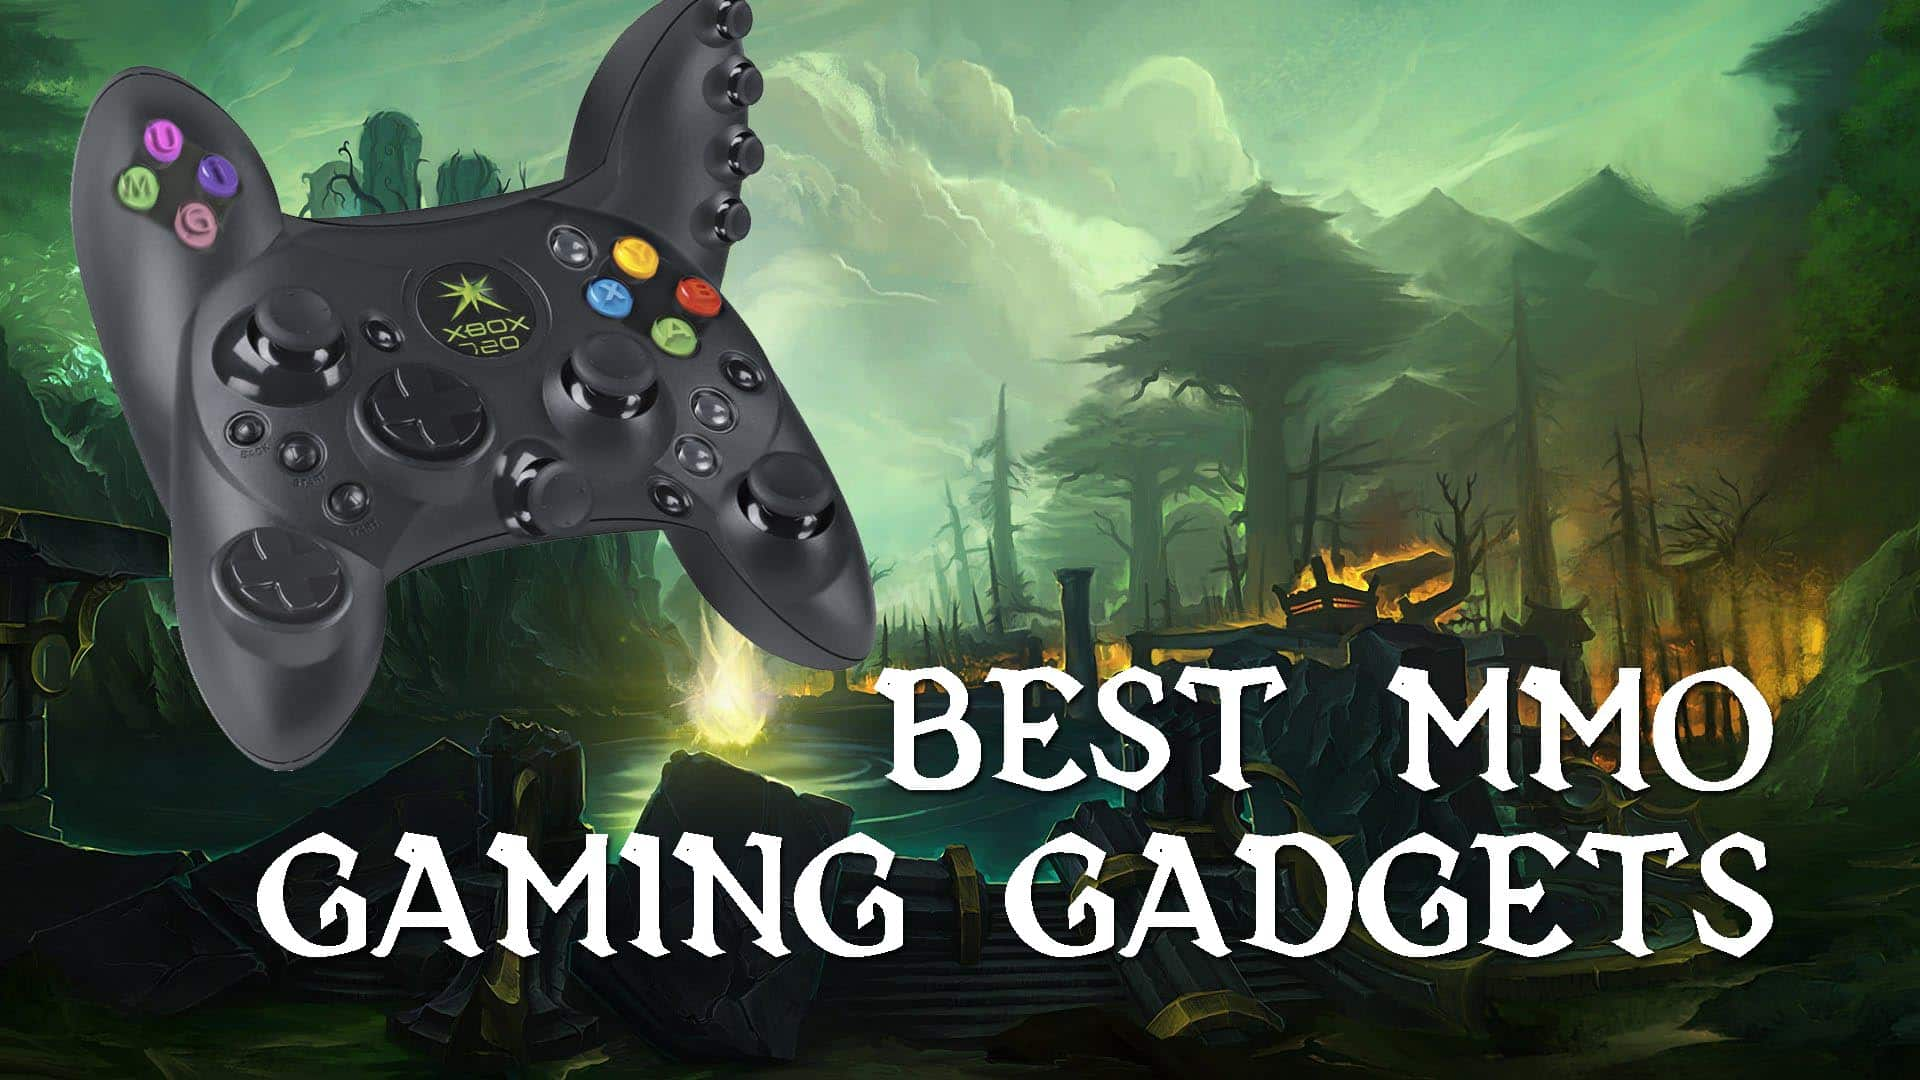 Best MMO Gaming Gadgets | Fextralife